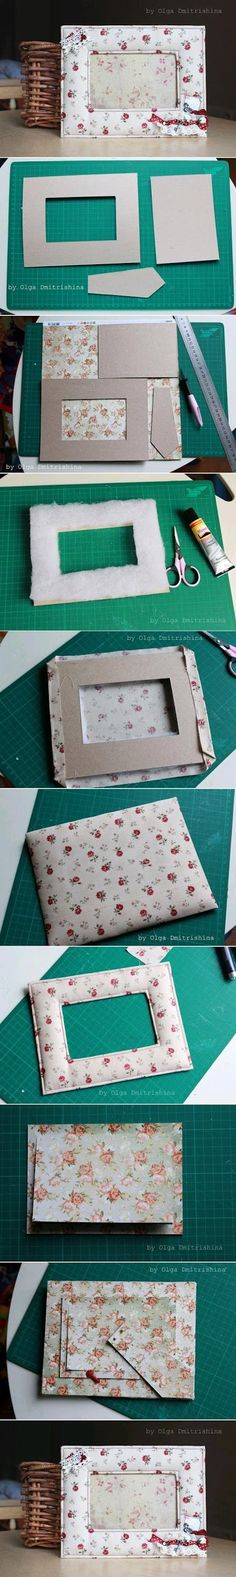 Easy Way To Make a Picture Frame/ marco de fotos